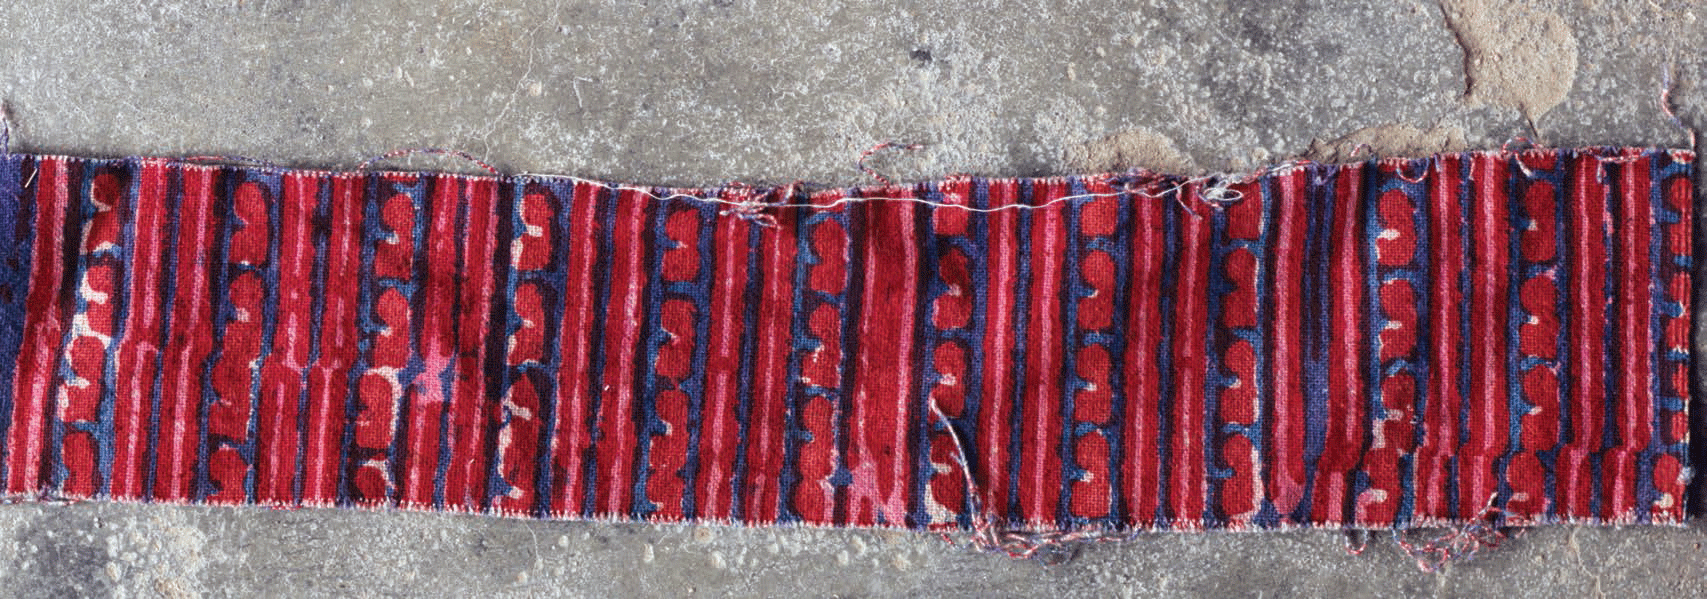 Fabric from Bela showing the  lavinginya design used by women of the Patel community